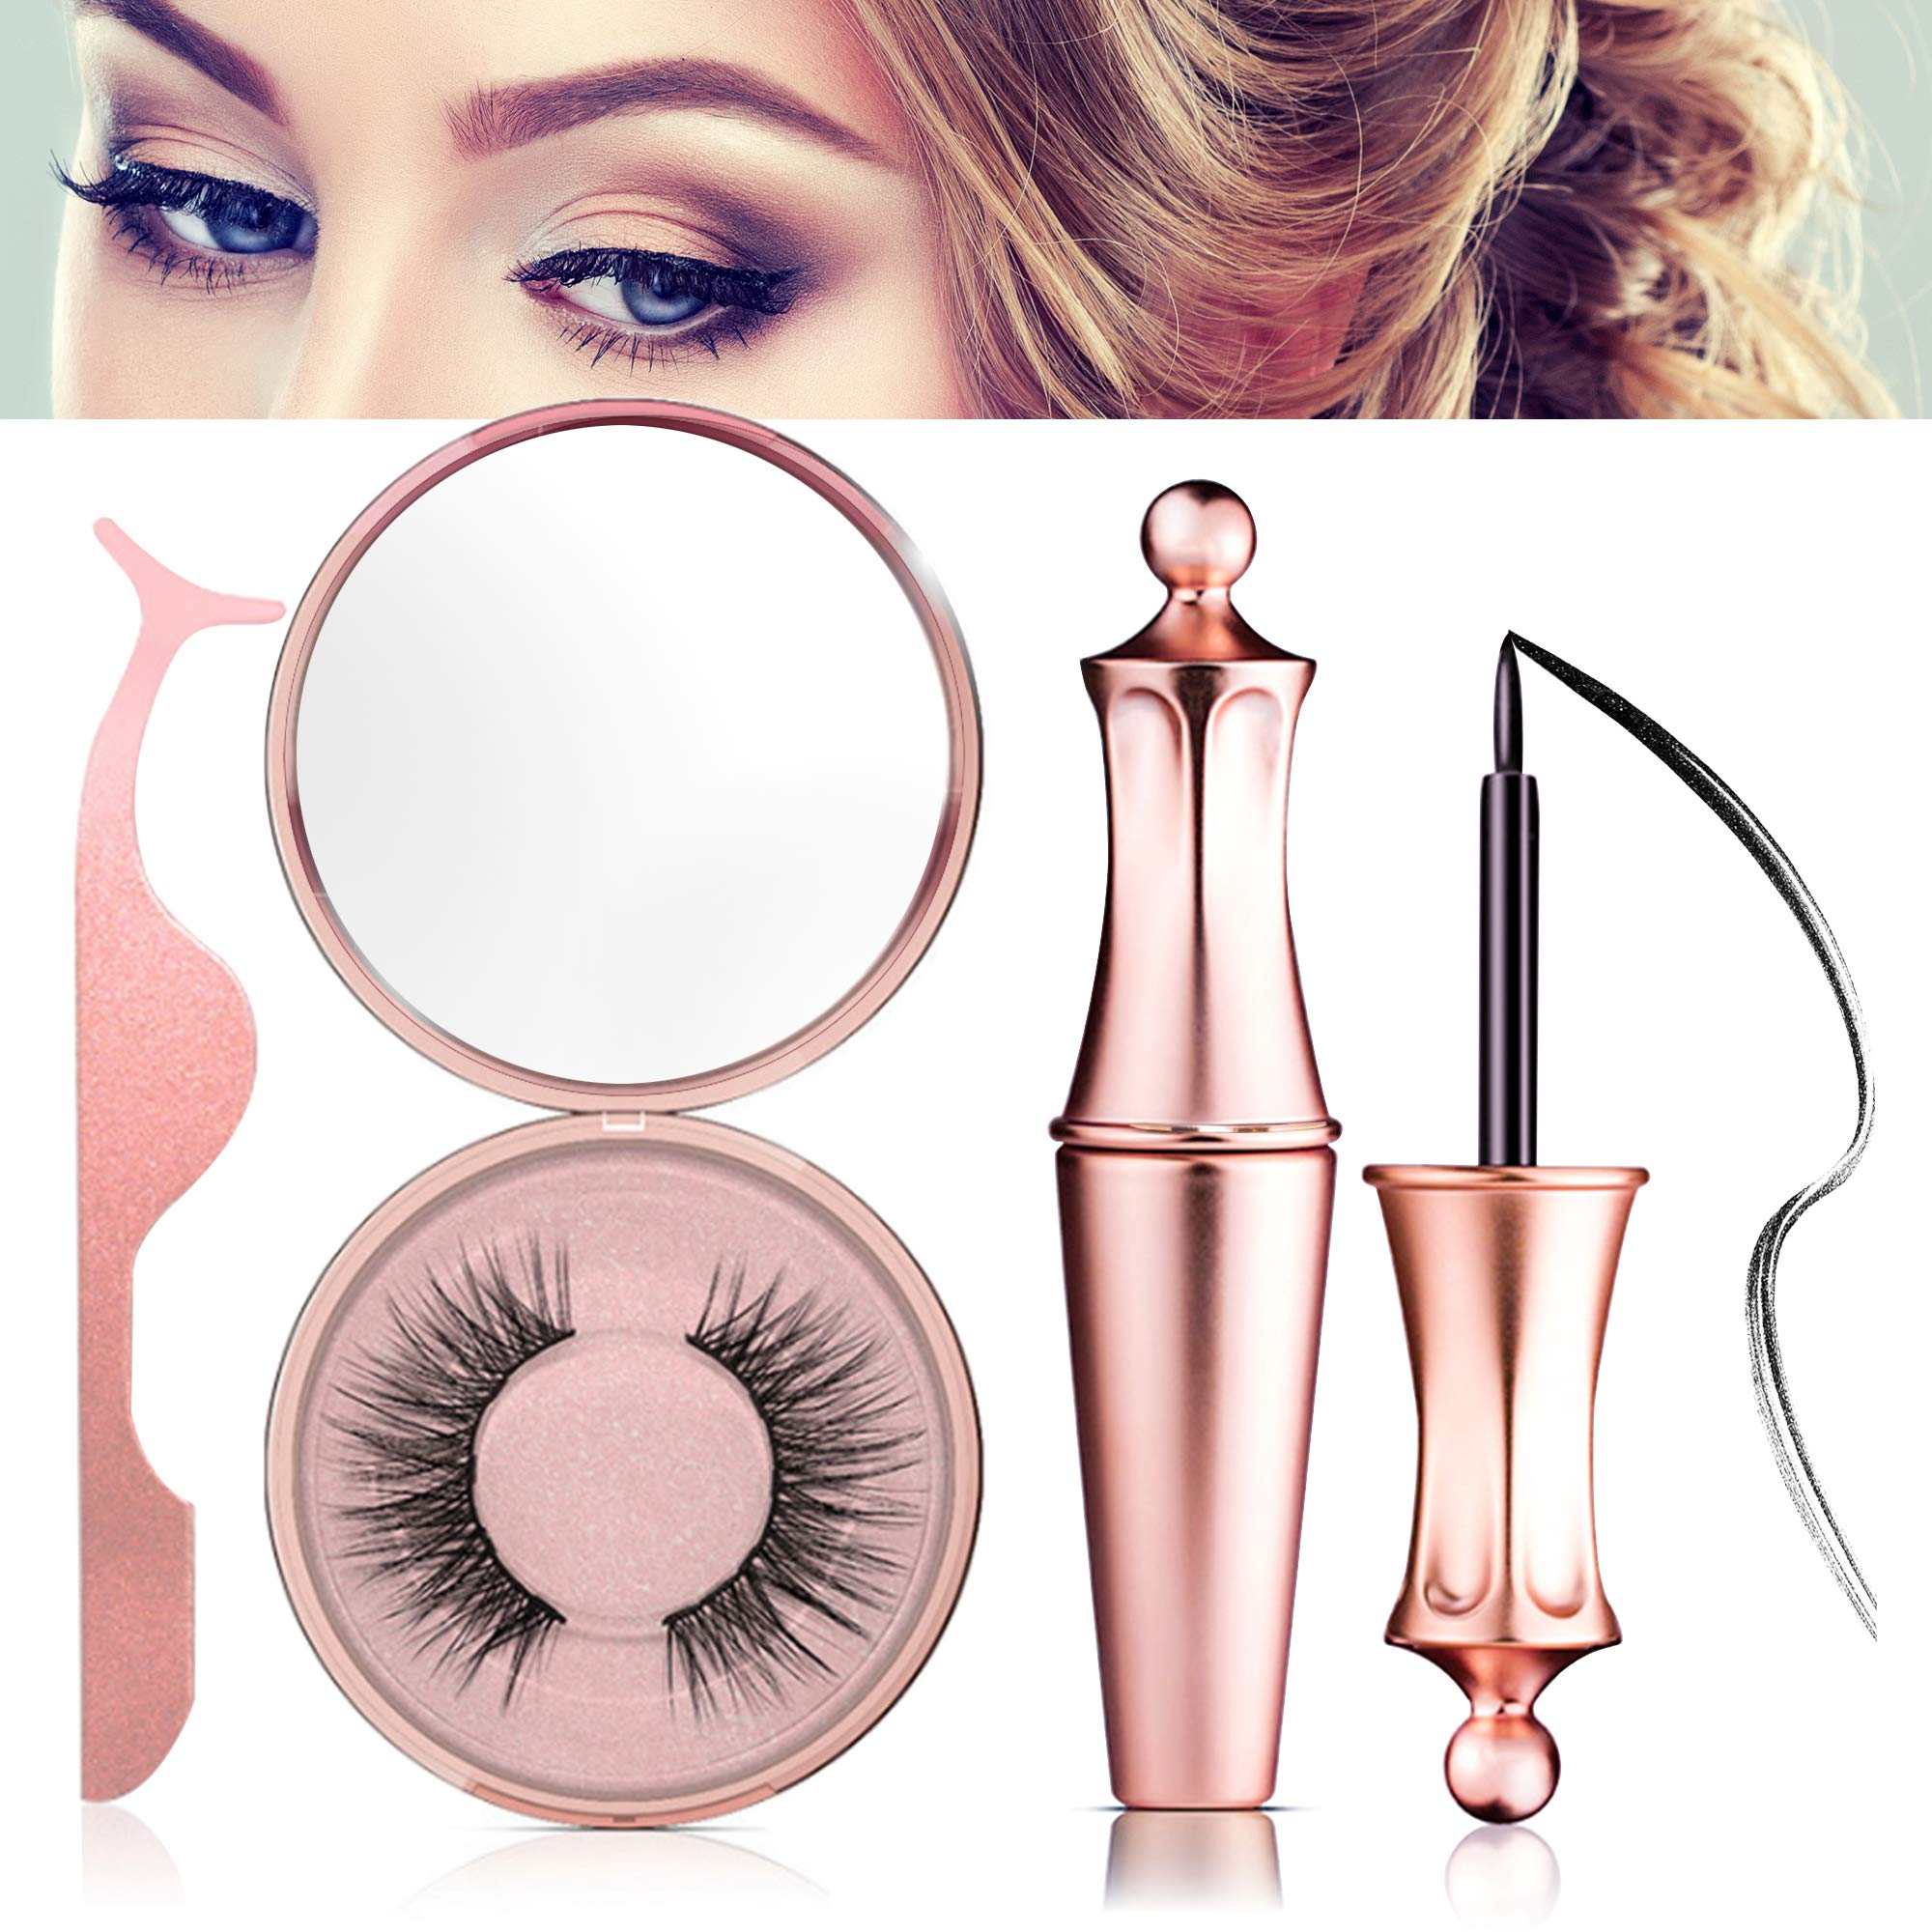 Magnetic Eyeliner Kit, Magnetic Eyeliner With Magnetic Eyelashes, Magnetic Lashliner For Use with Magnetic False Lashes by Cutie Academy